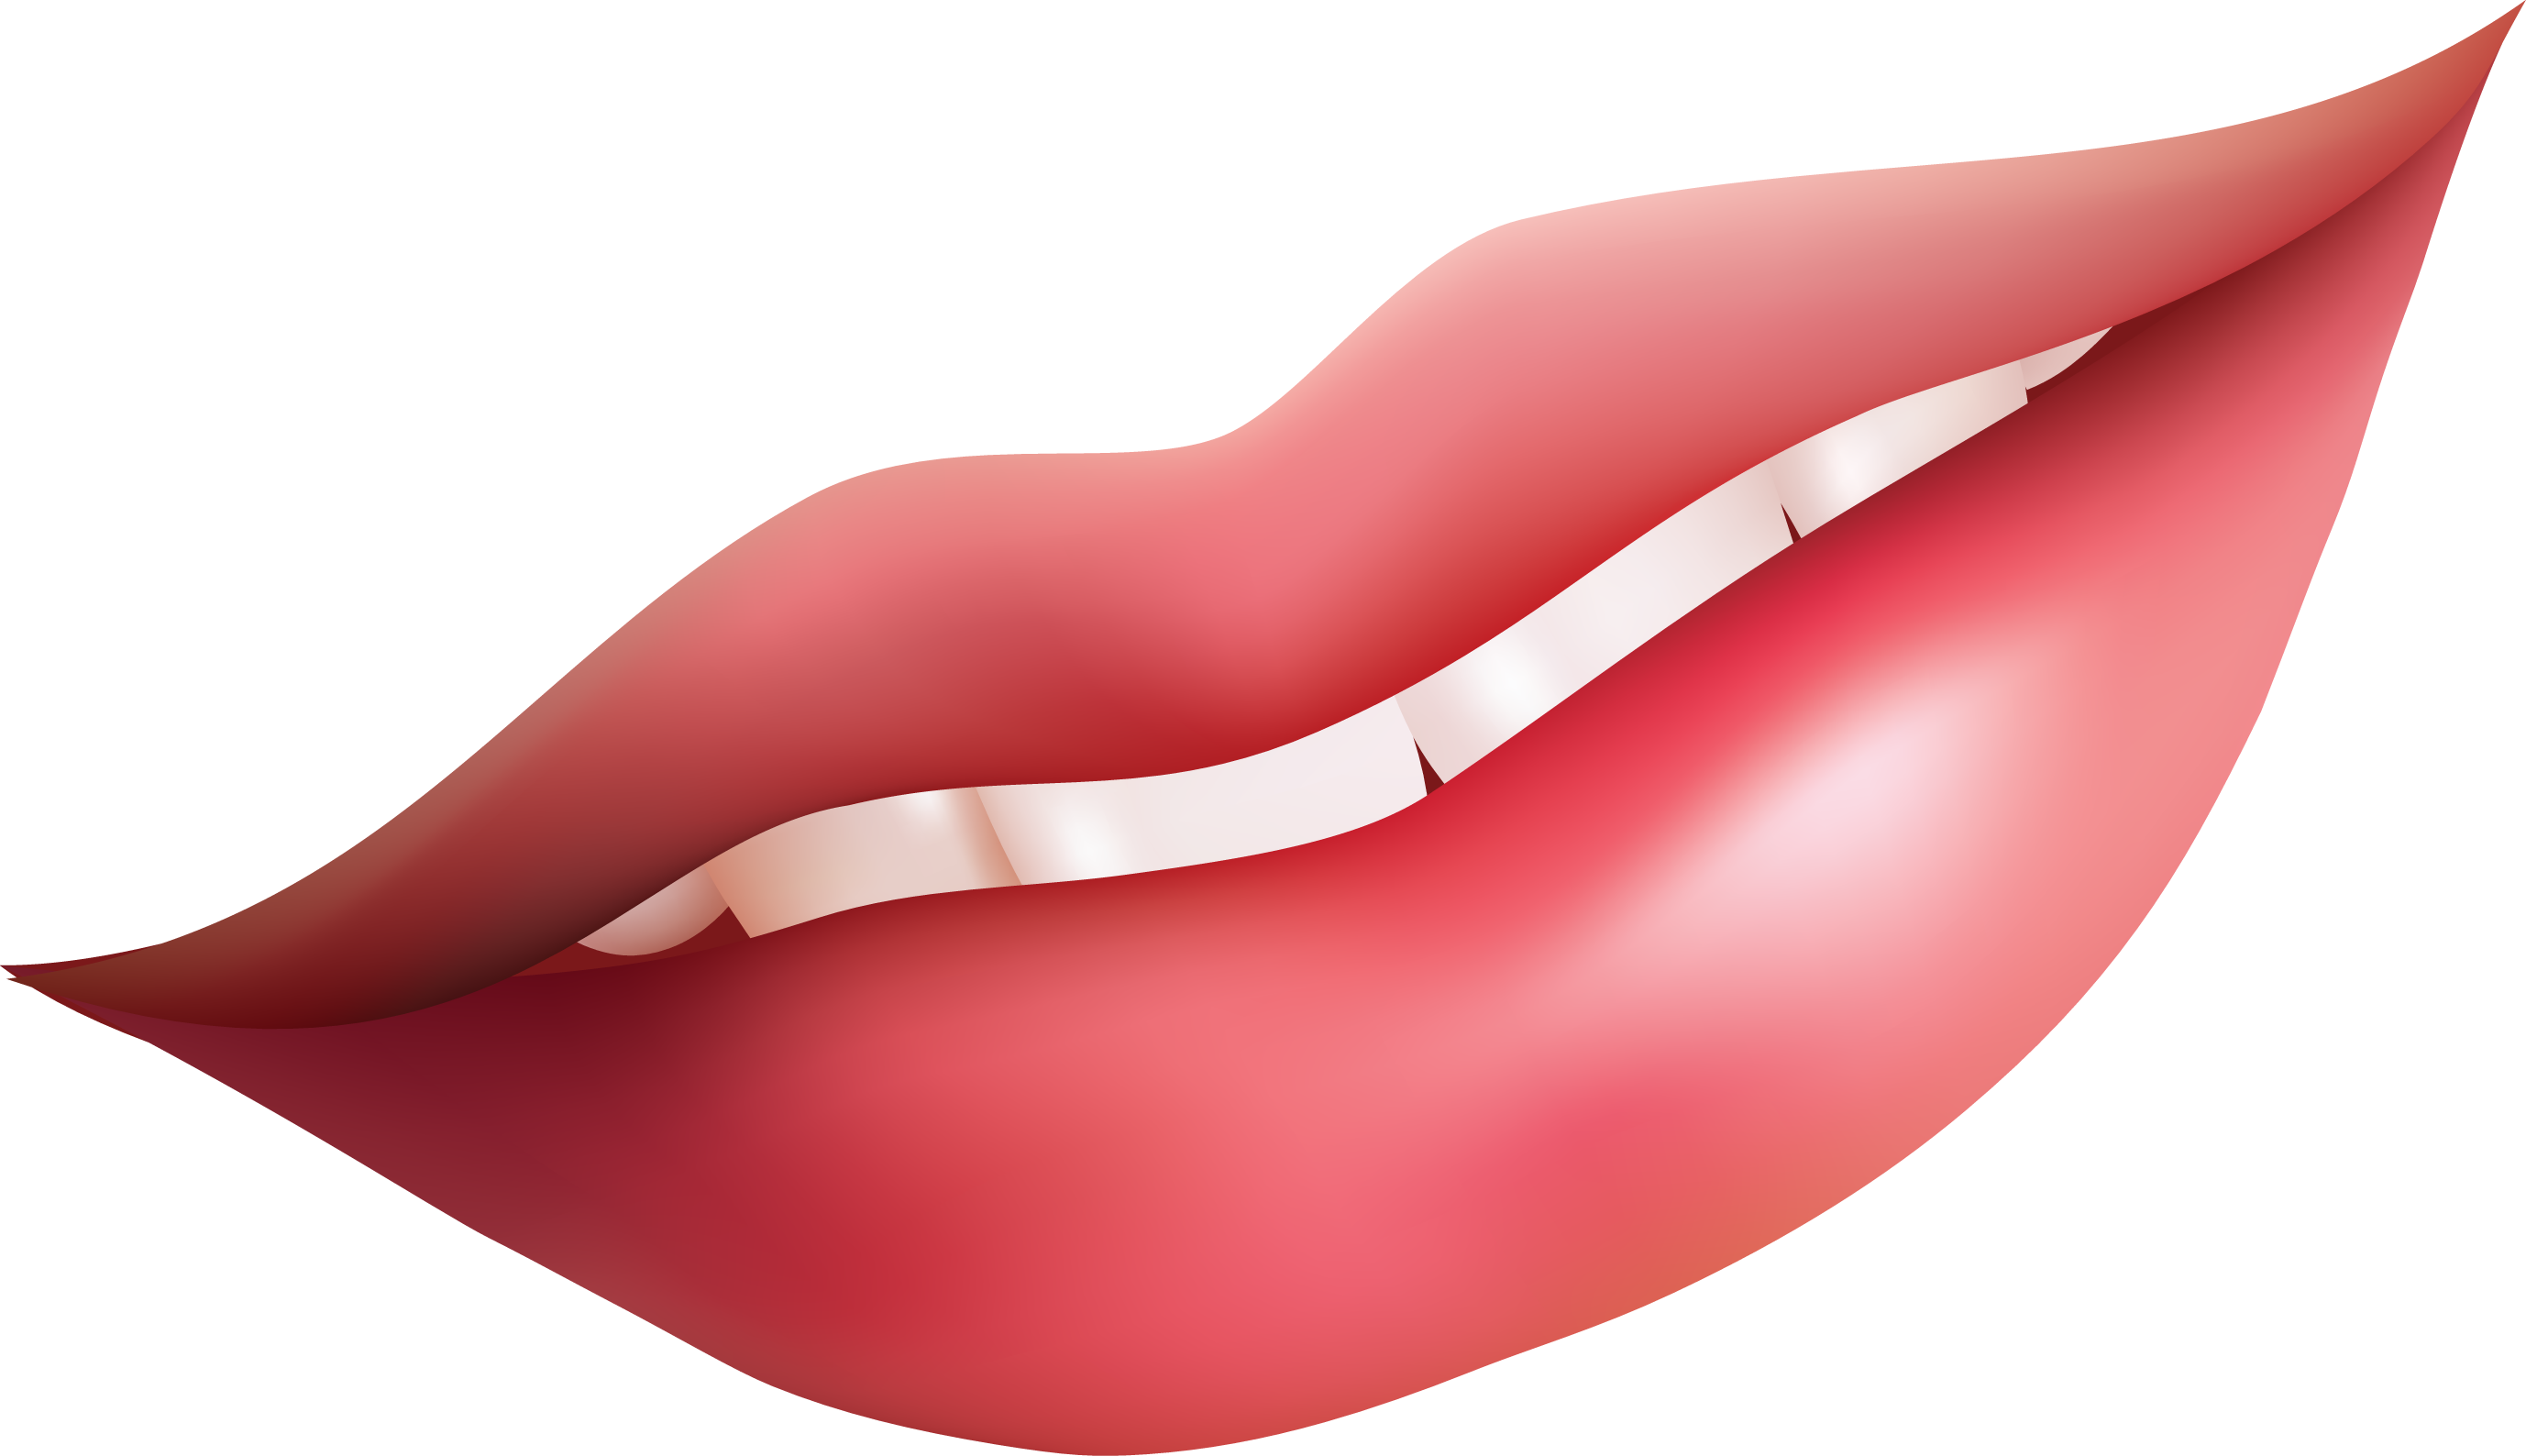 Lips png image free. Lip clipart png freeuse stock